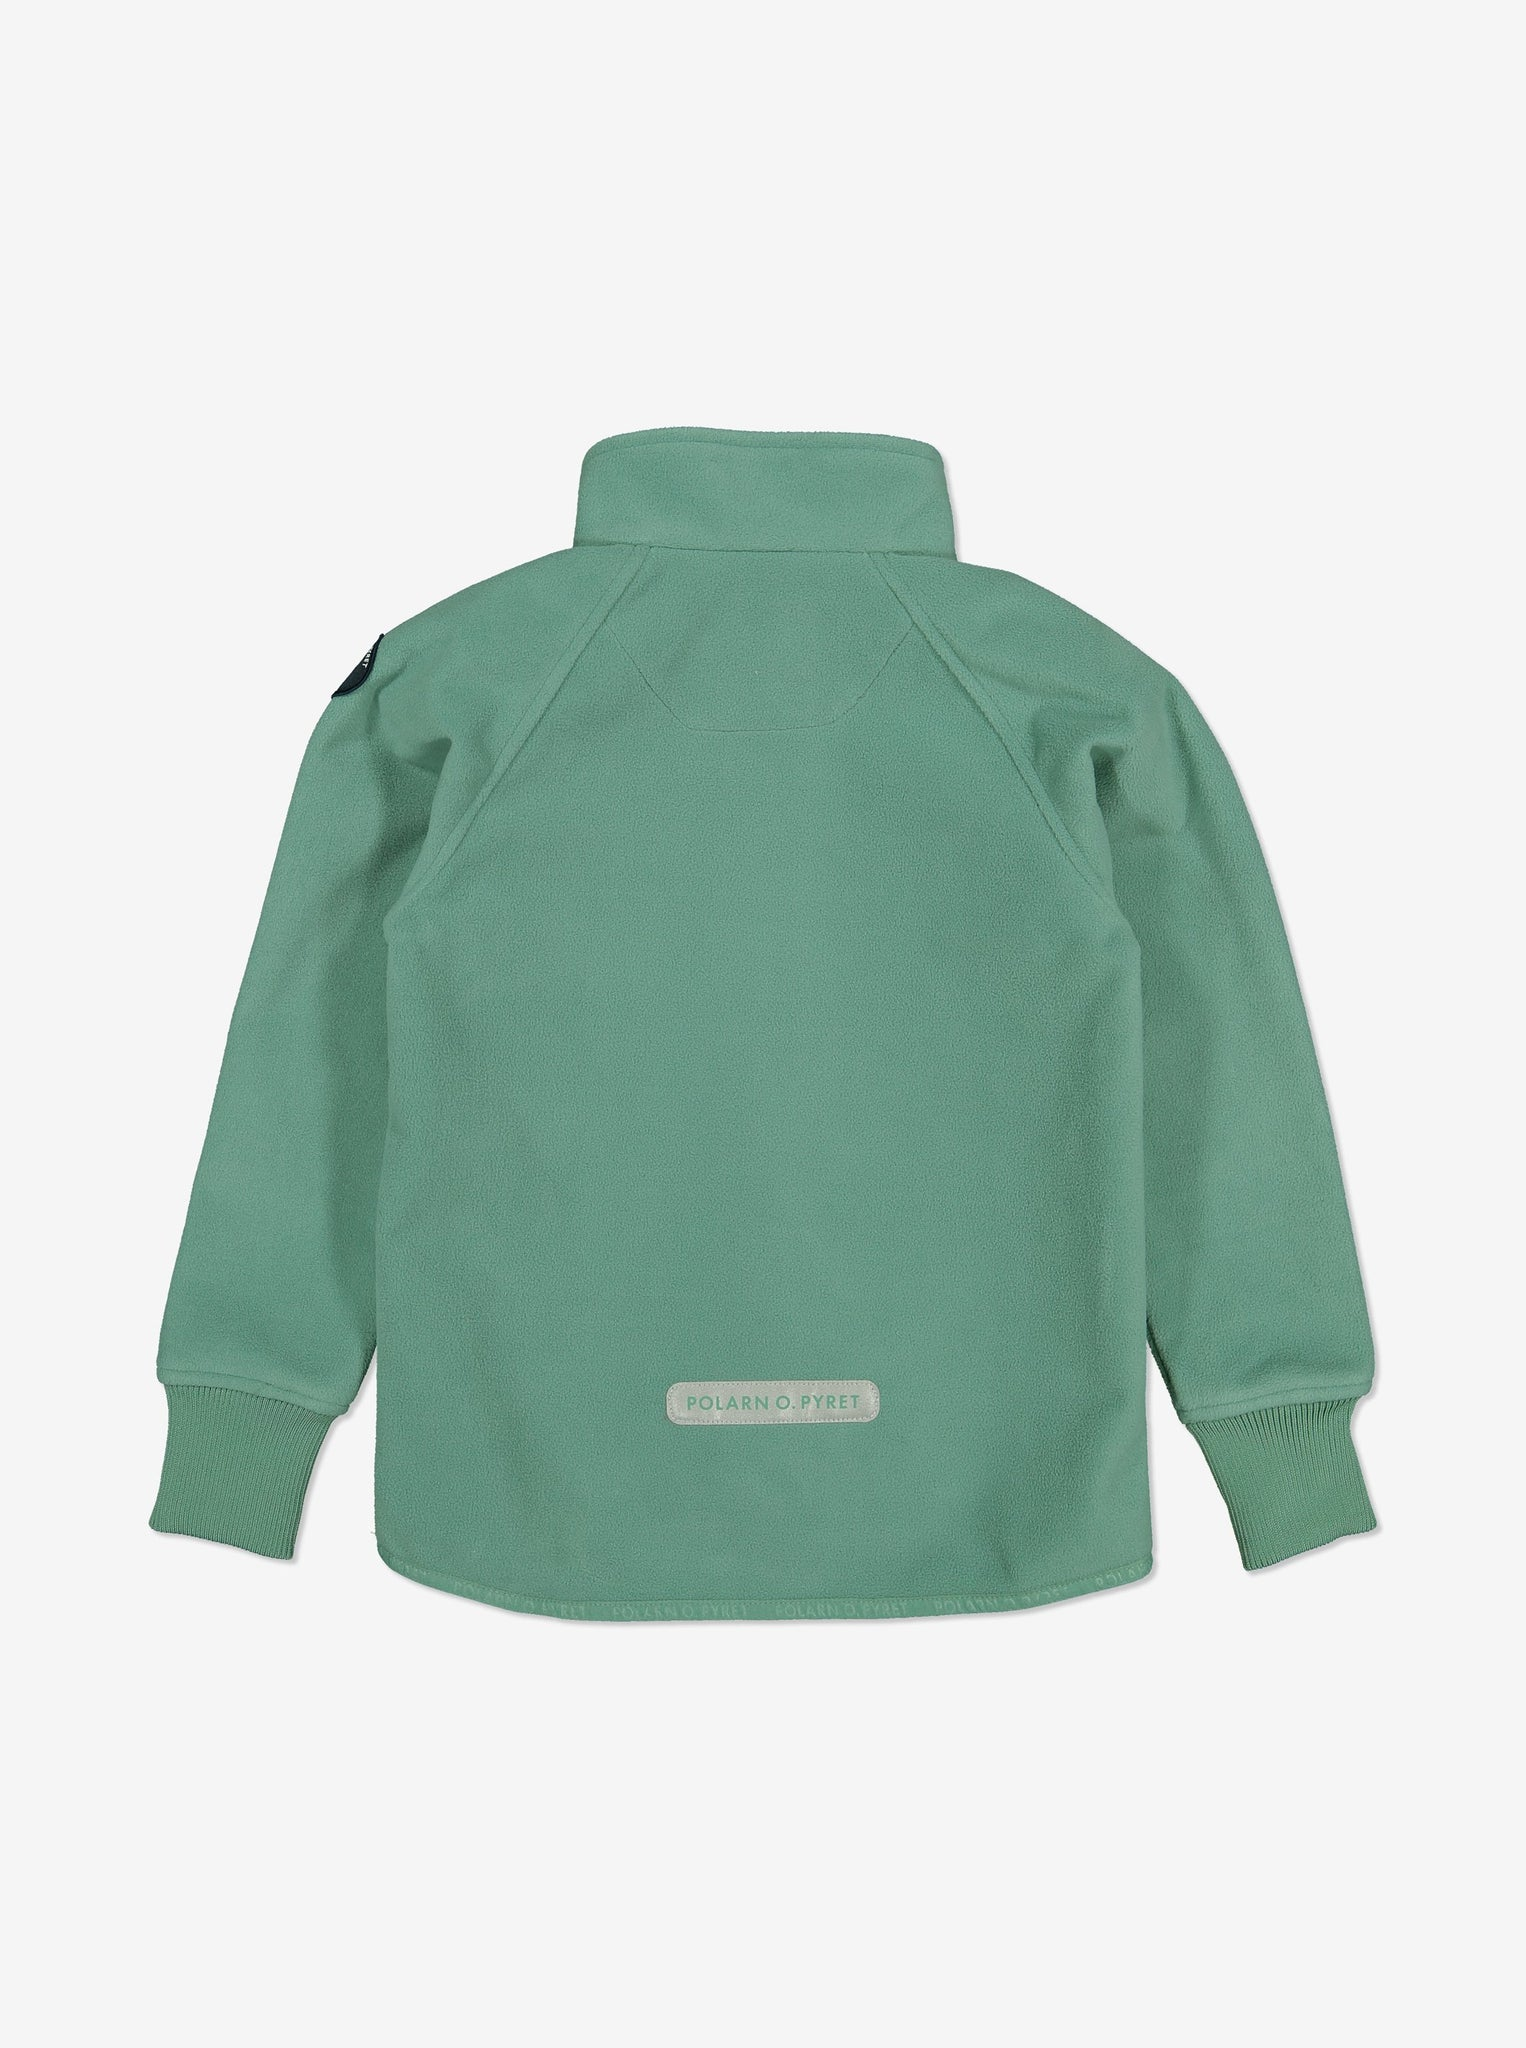 Back view of a kids waterproof fleece jacket in green, with fit cuffs and logo patch at the back, made of breathable fabric.